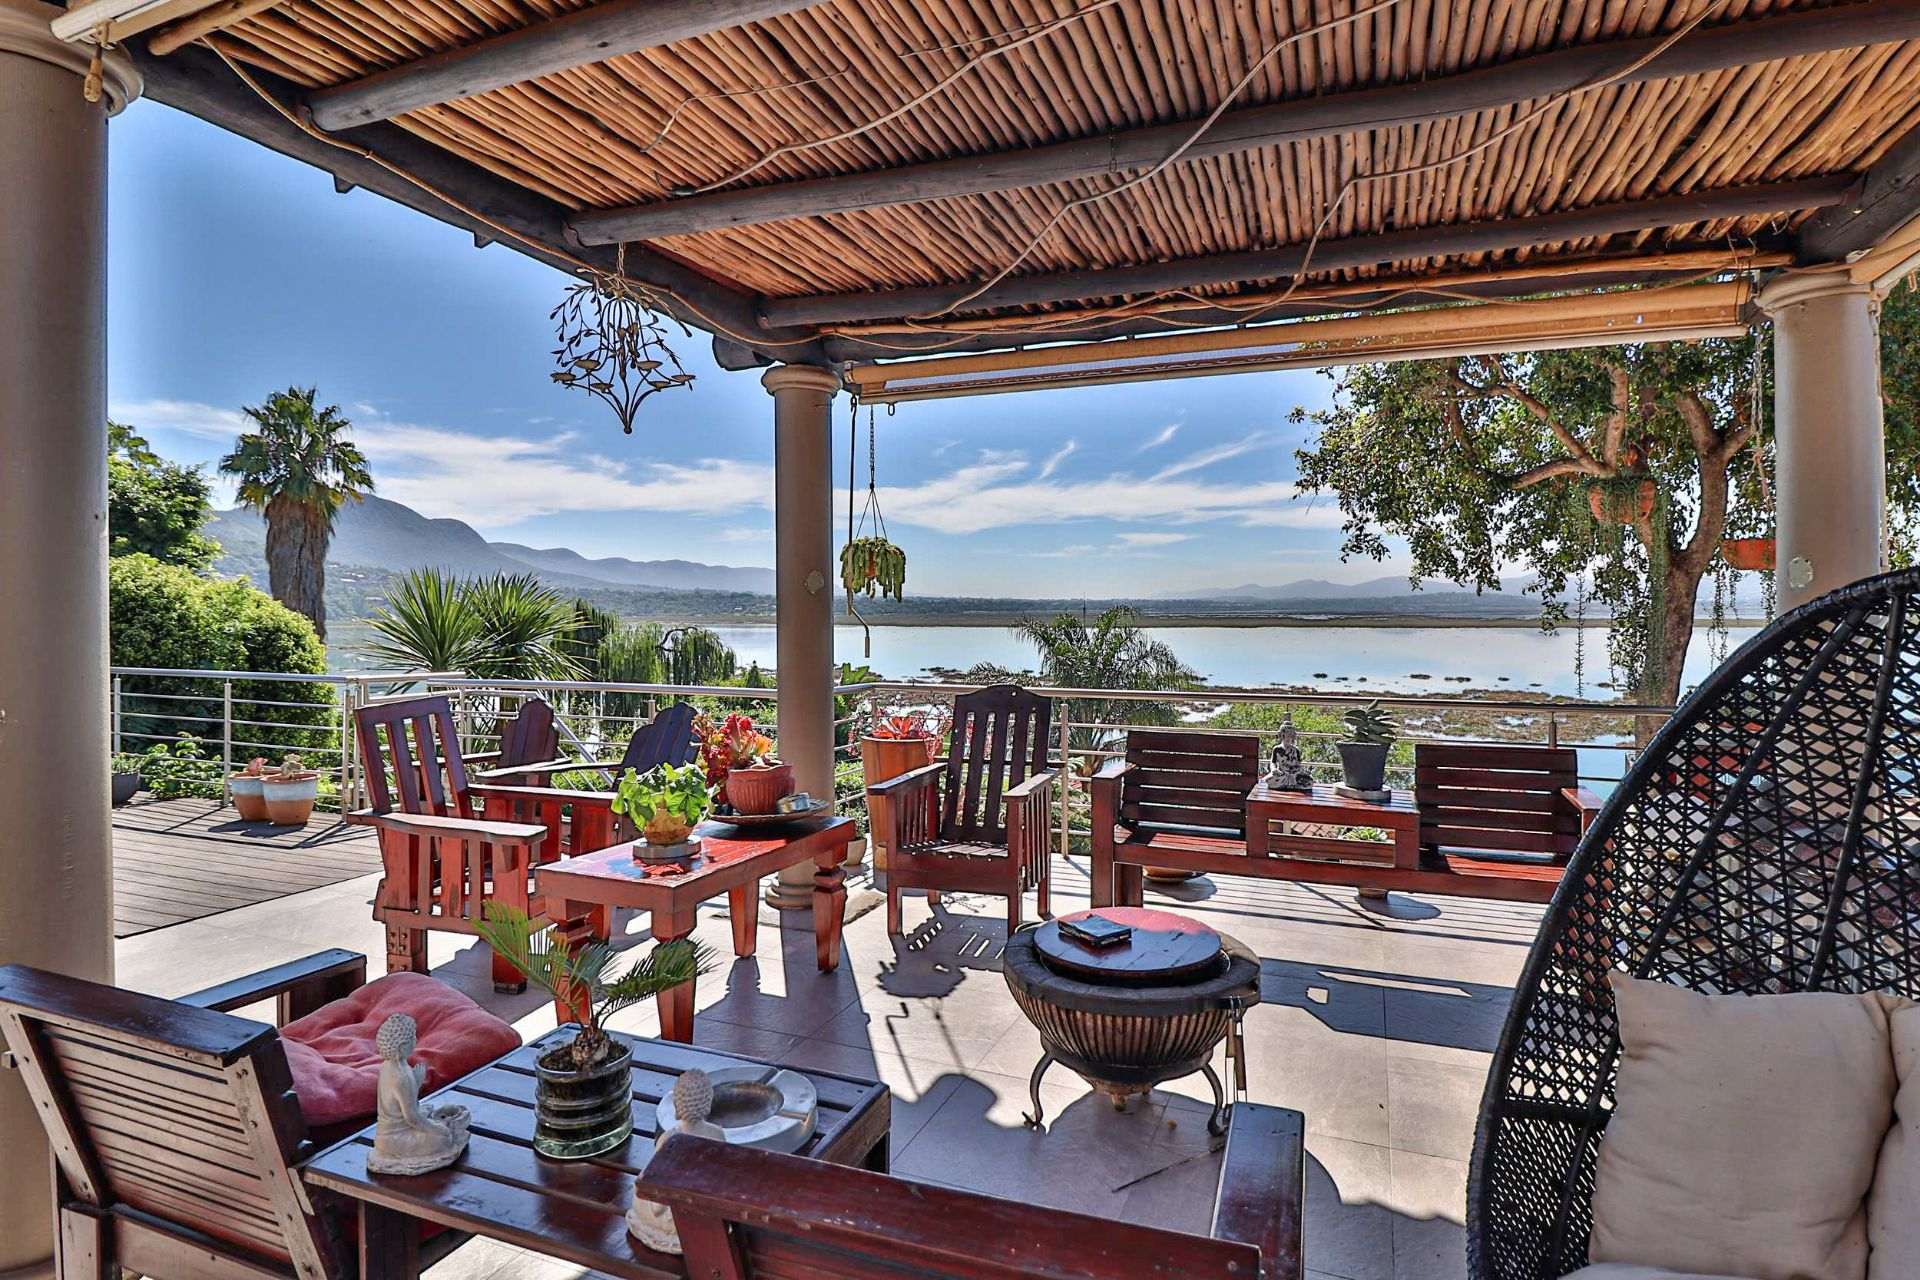 House in Kosmos Village - Views from the patio over the dam and beyond